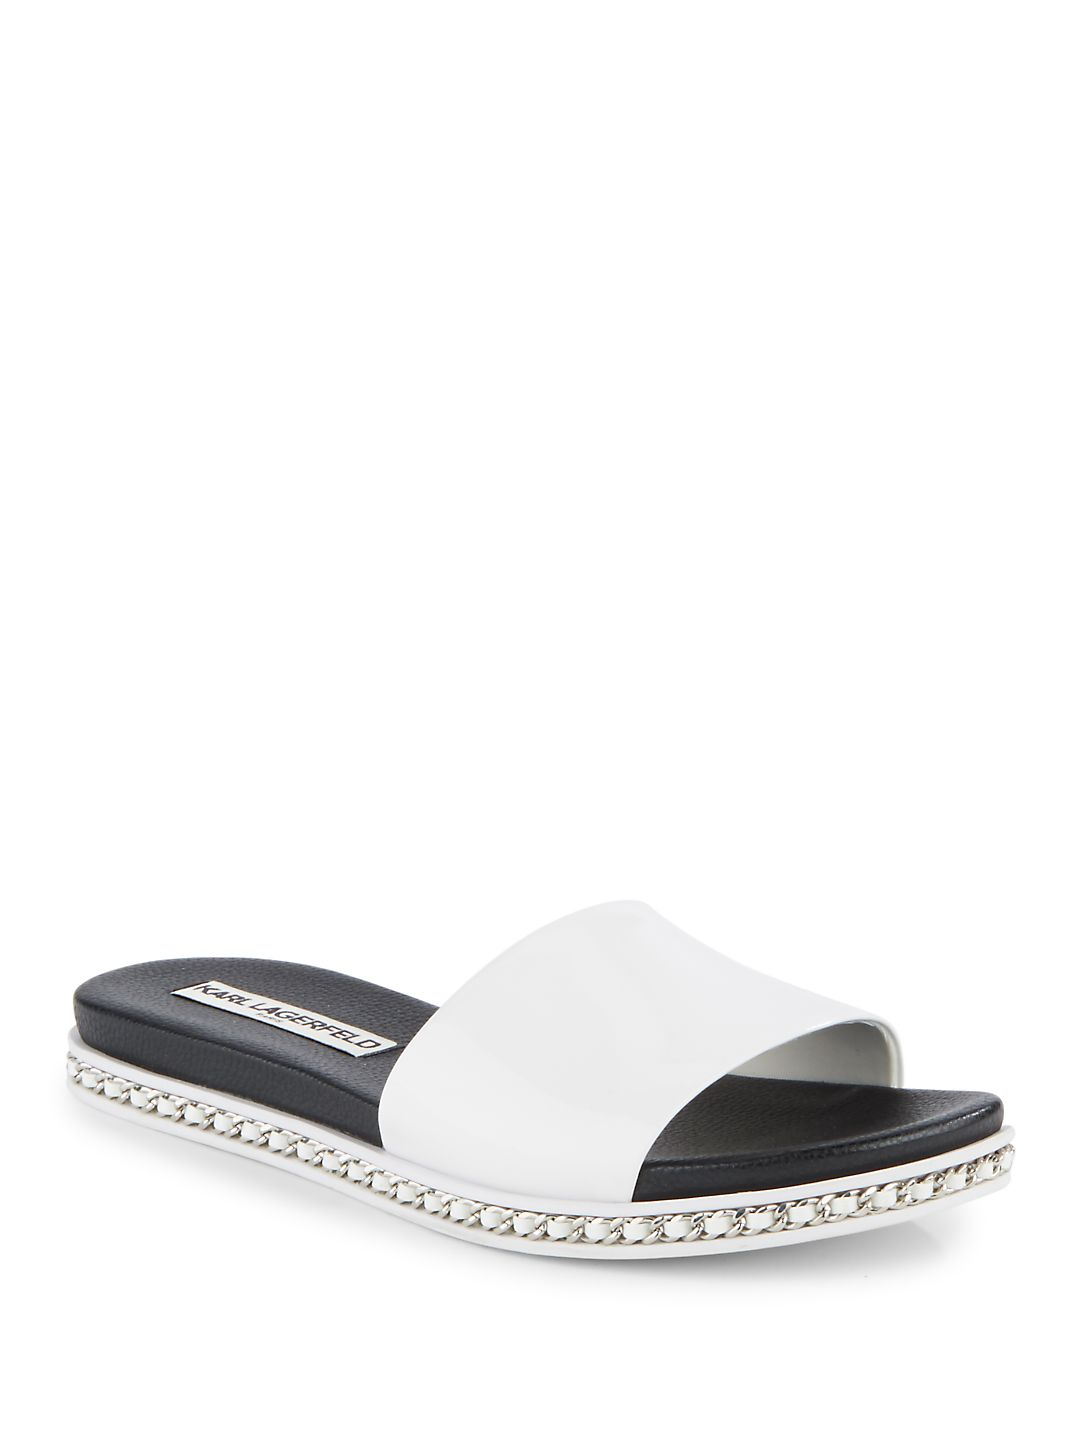 Billi Leather Slides